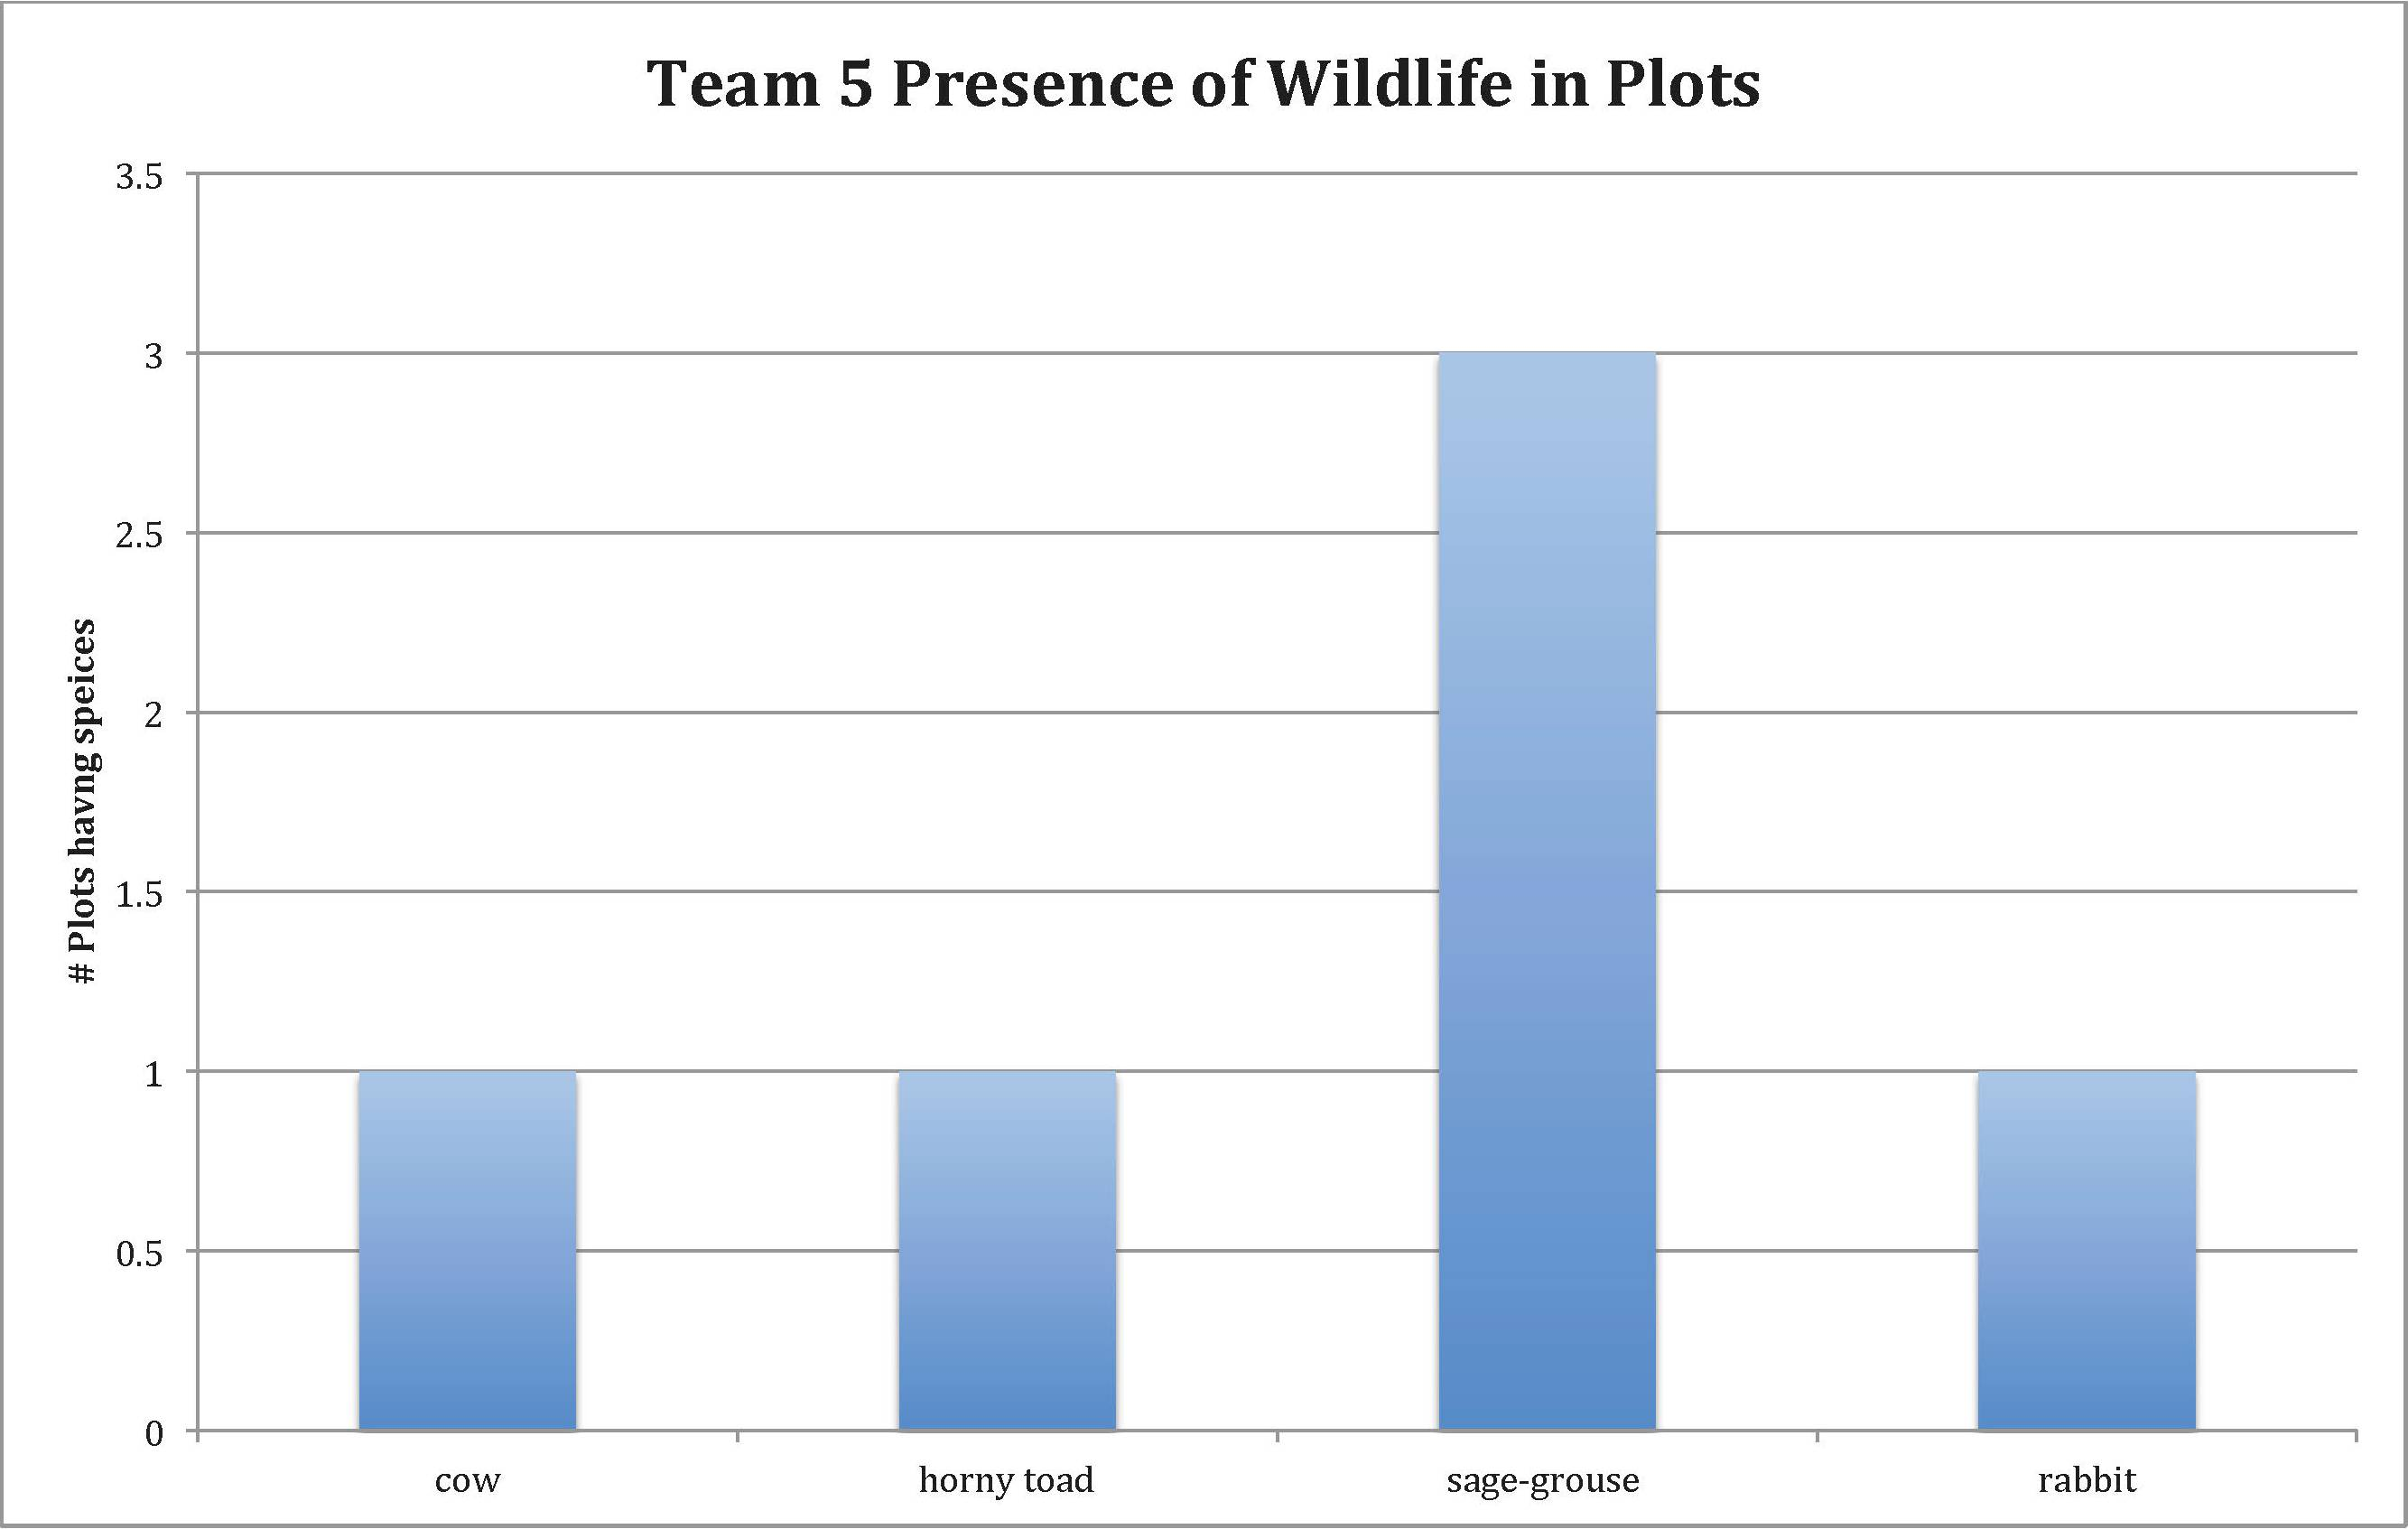 team 5 presence of wildlife in plots